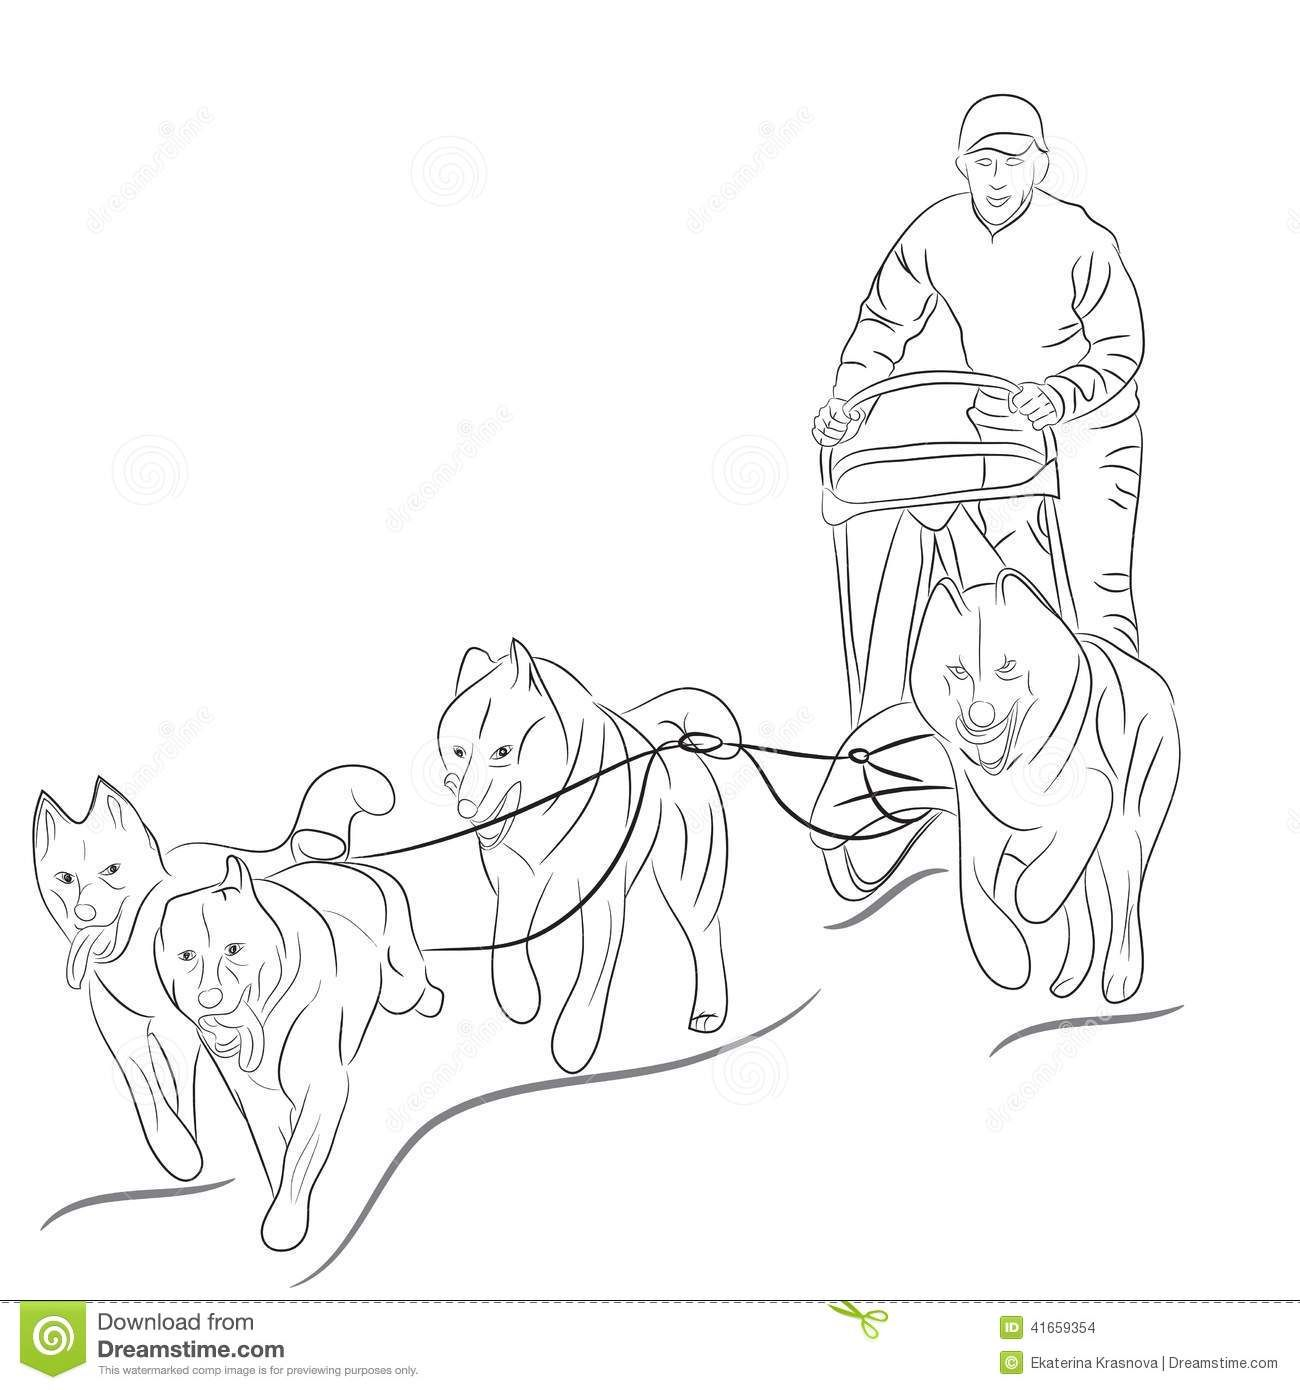 Hand drawn illustration of dogs